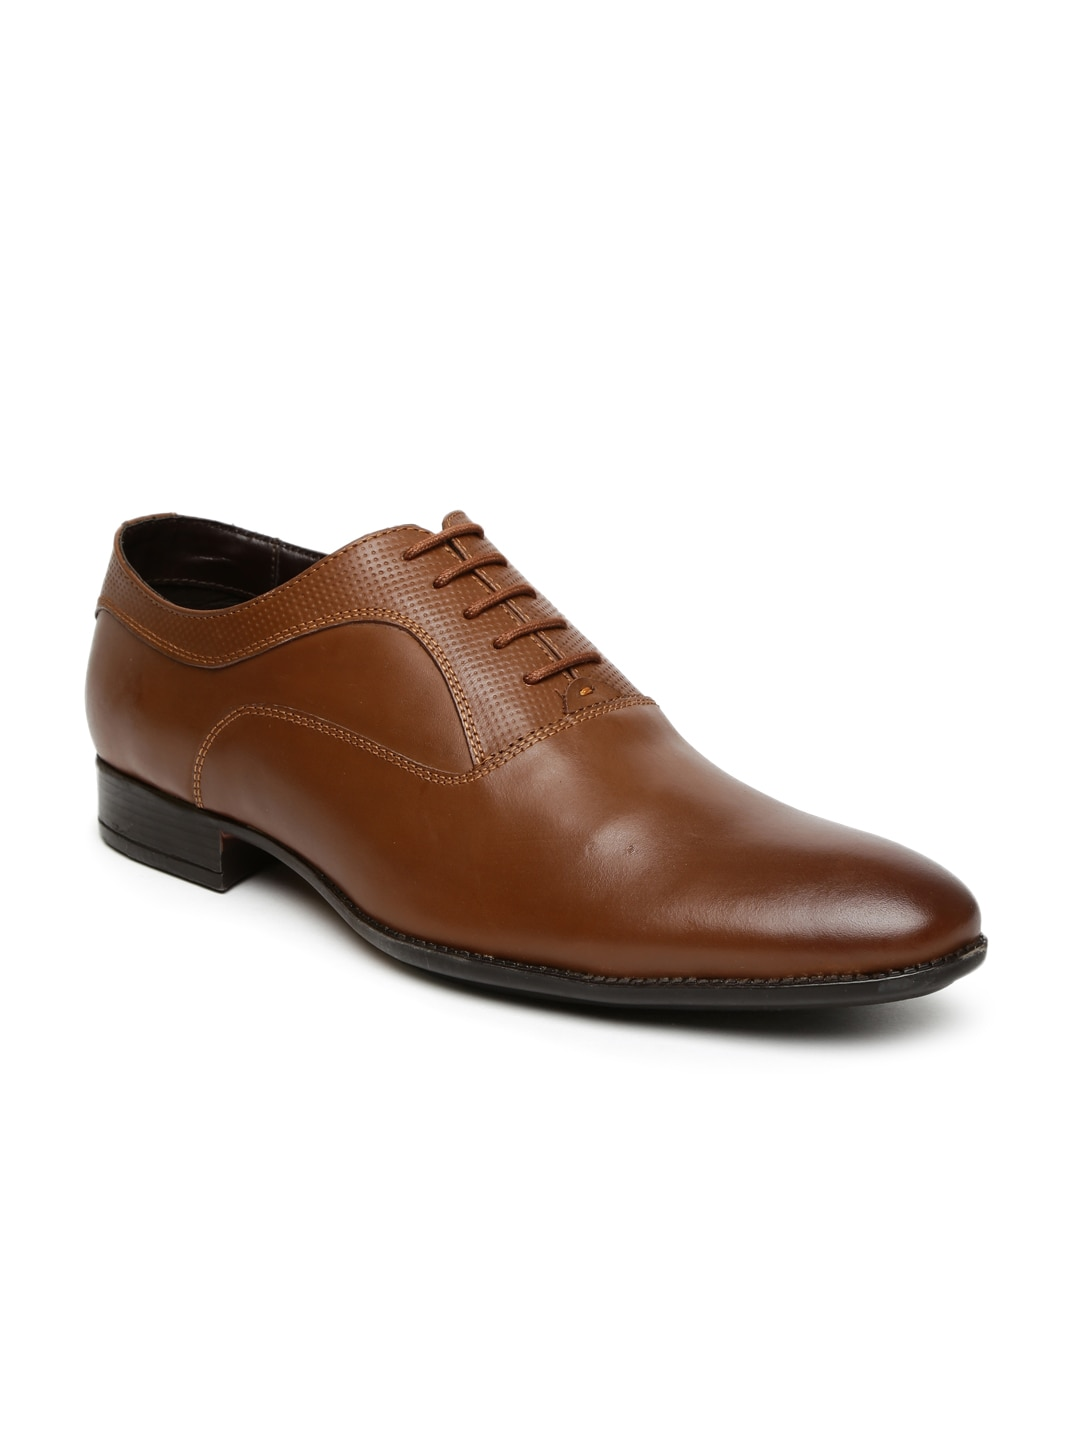 Premium Leather Shoes India